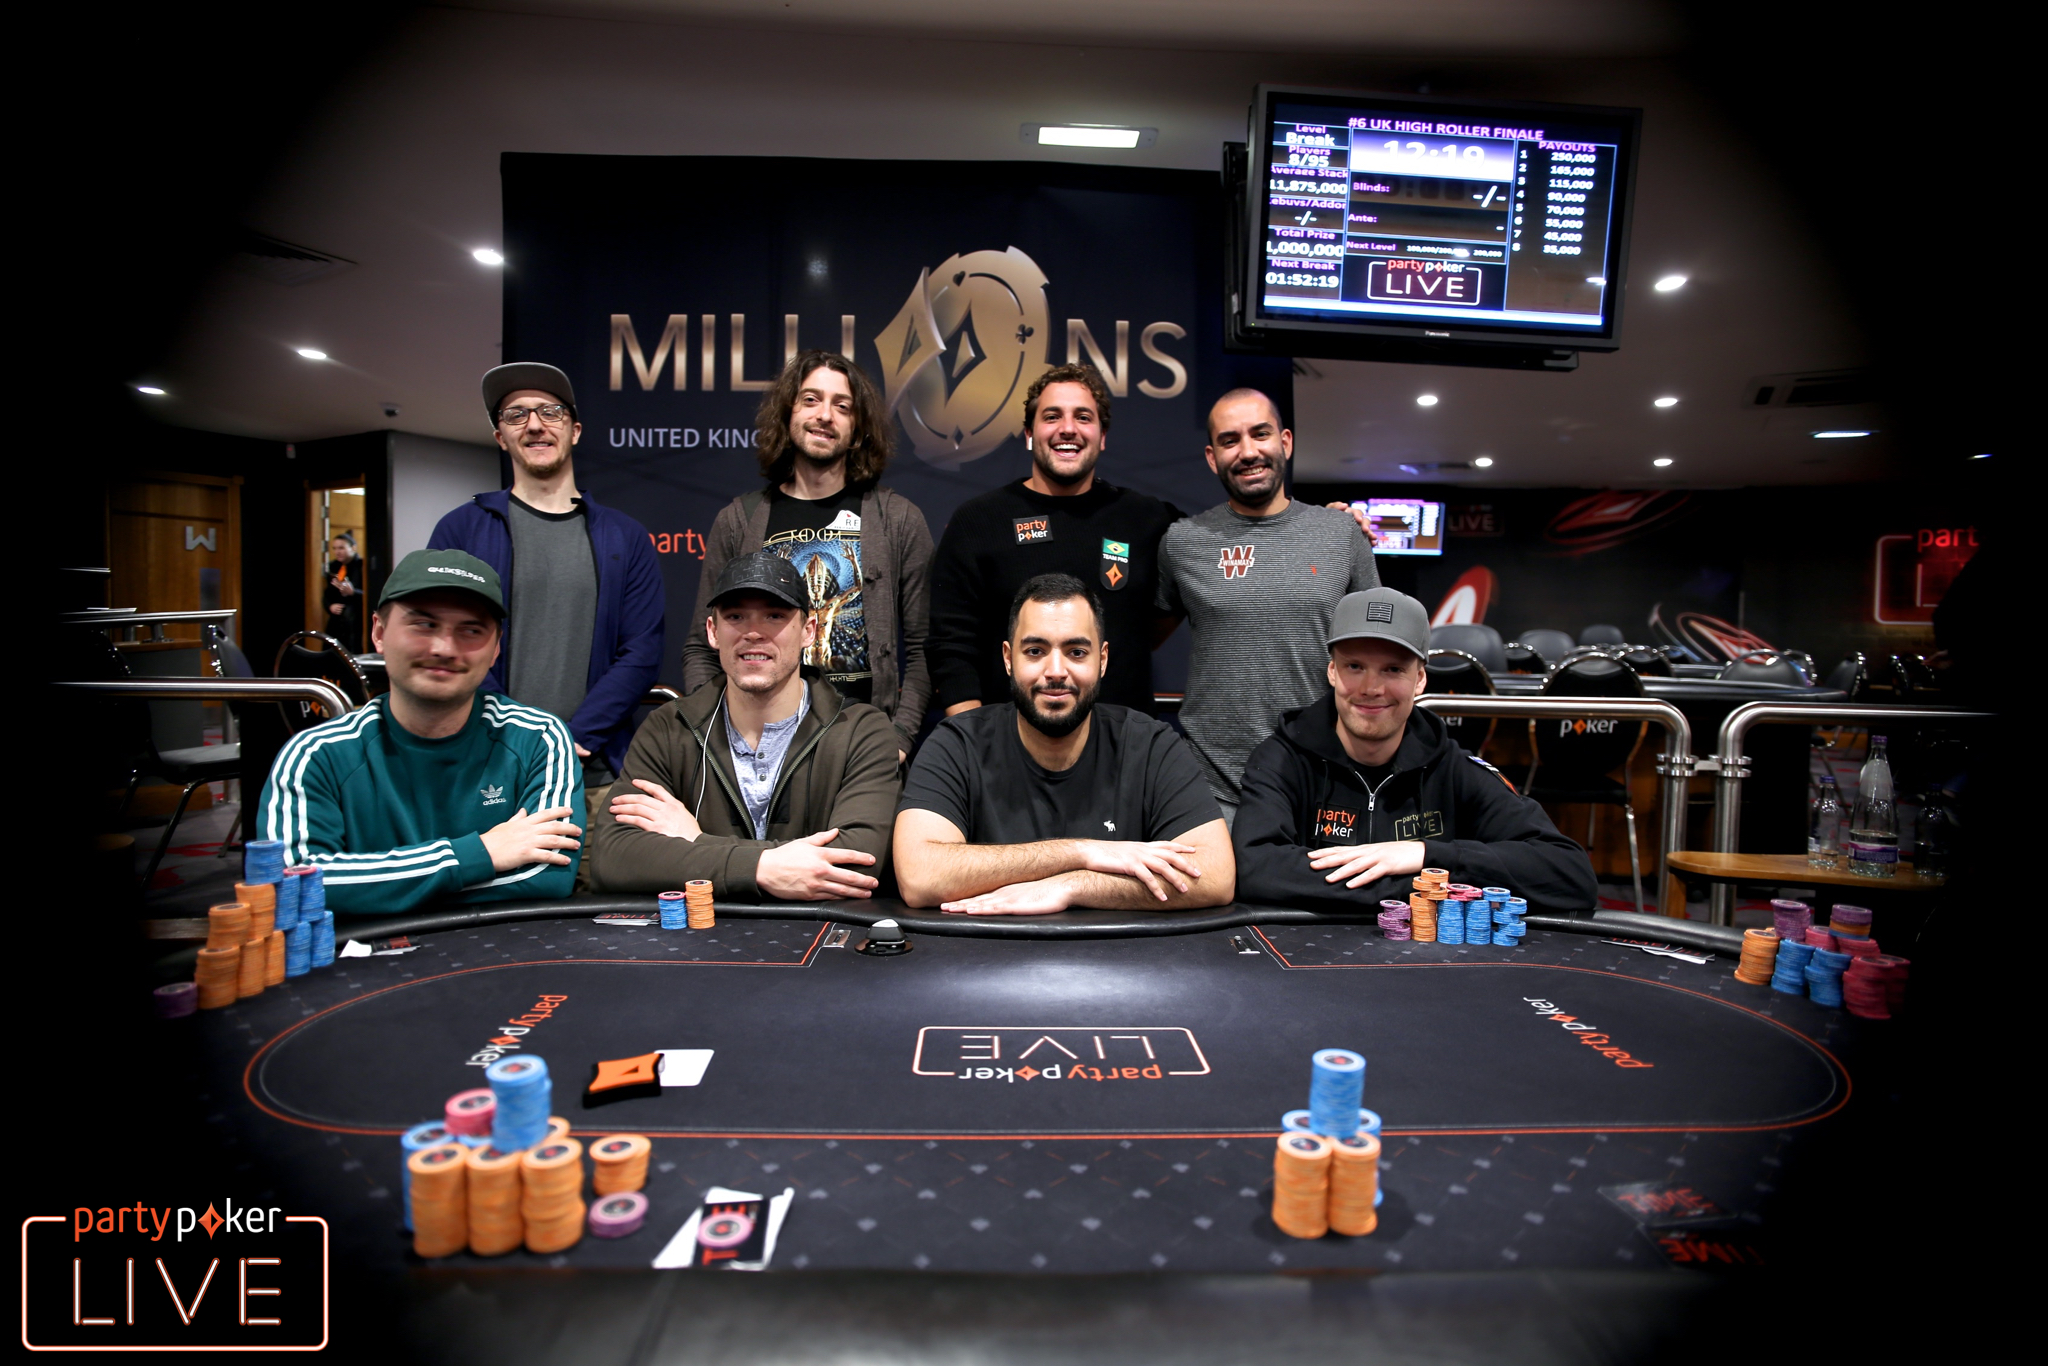 Mesa Final do High Roller Finale do partypoker MILLIONS Reino Unido